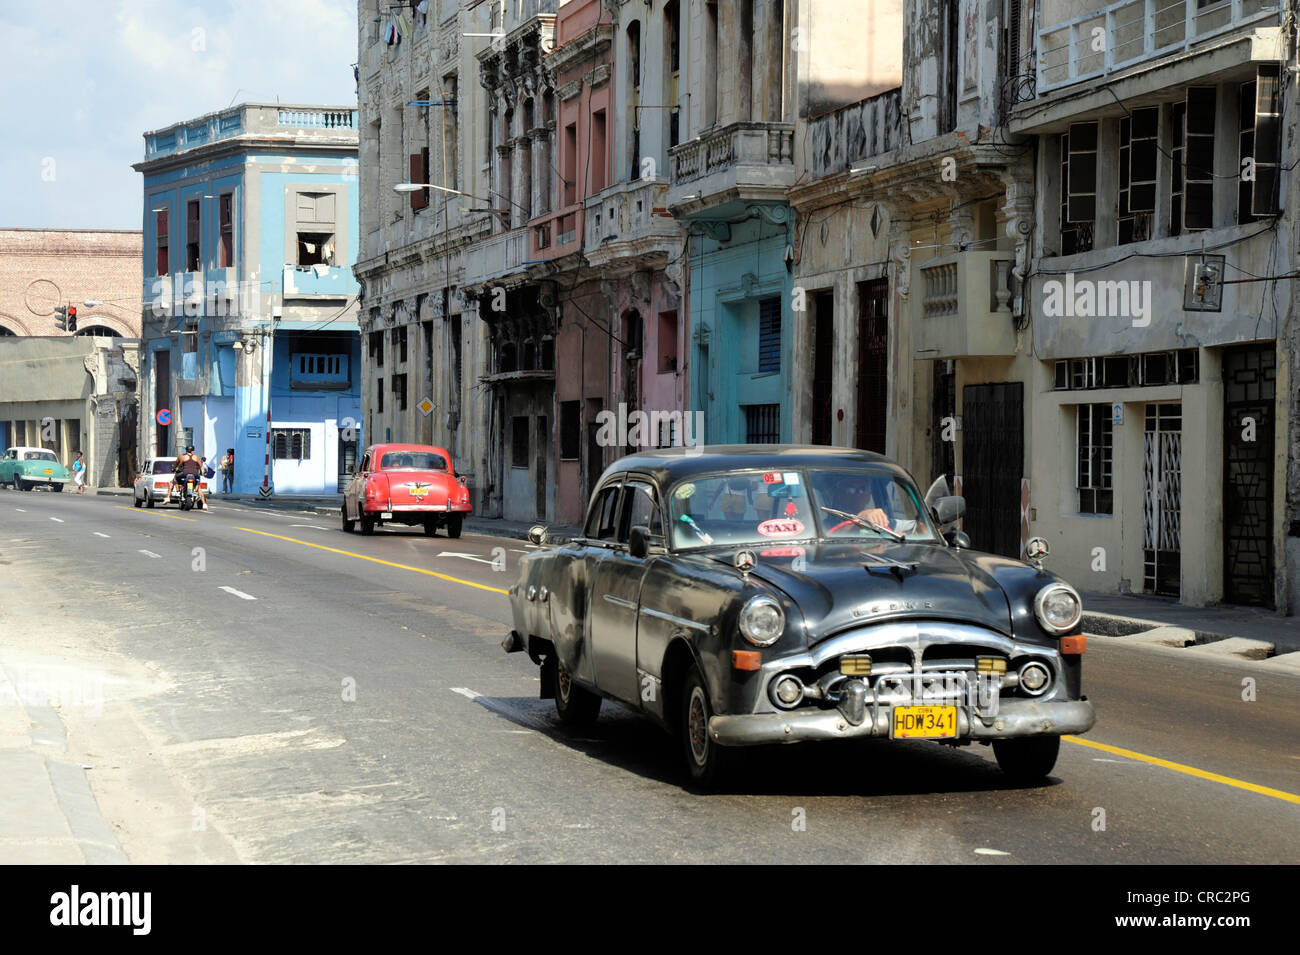 Taxi, black classic car of the 1950's driving in the city centre of Havana, Centro Habana, Cuba, Greater Antilles, - Stock Image